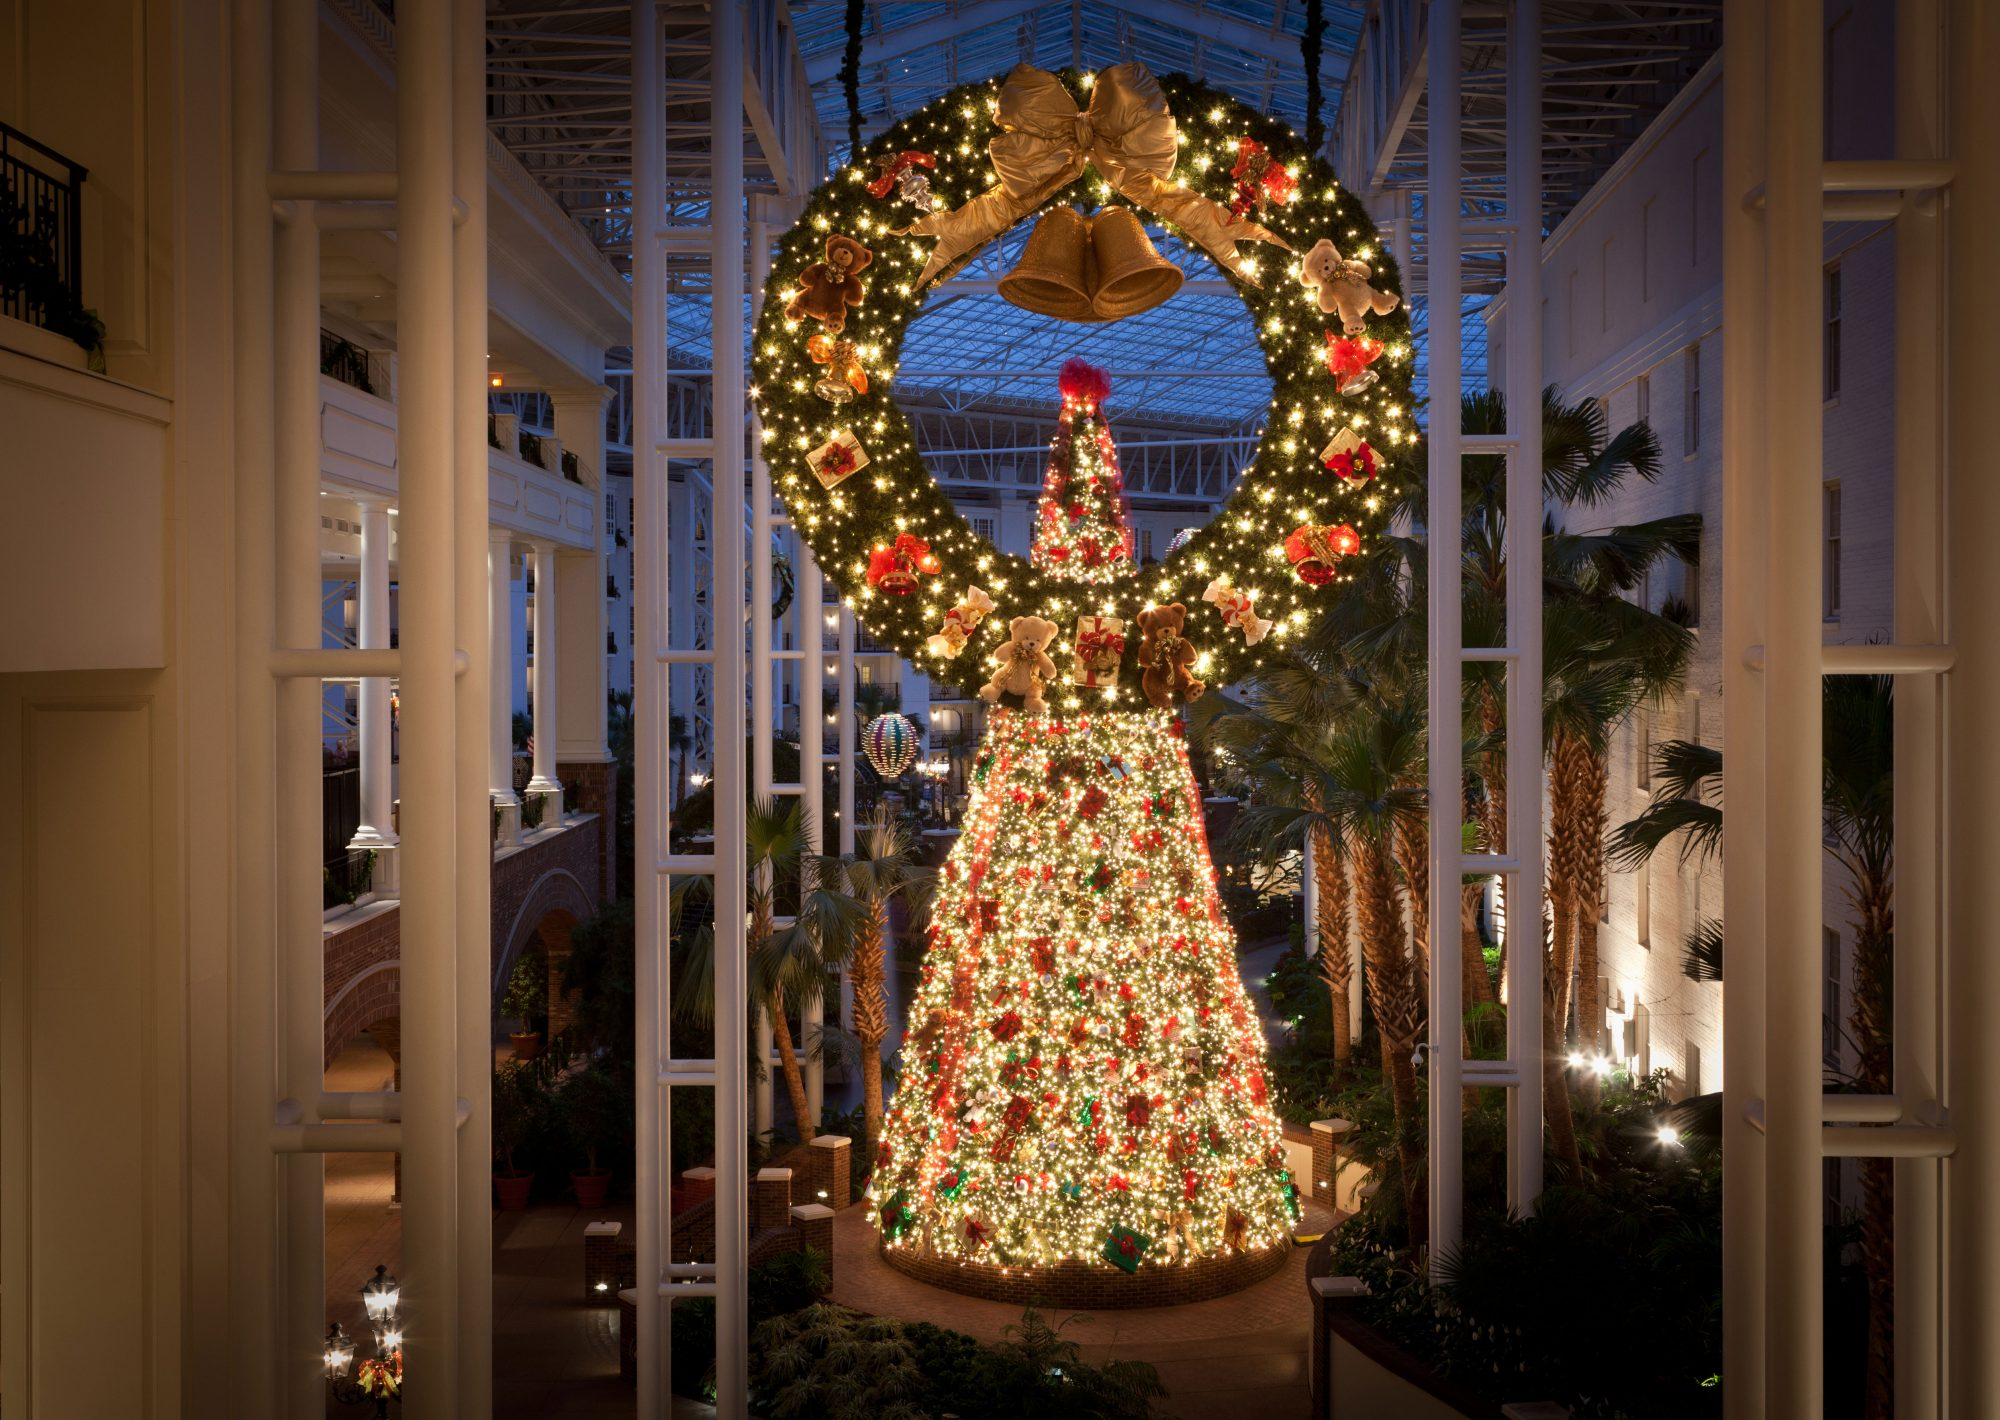 A Country Christmas at Gaylord Opryland Resort